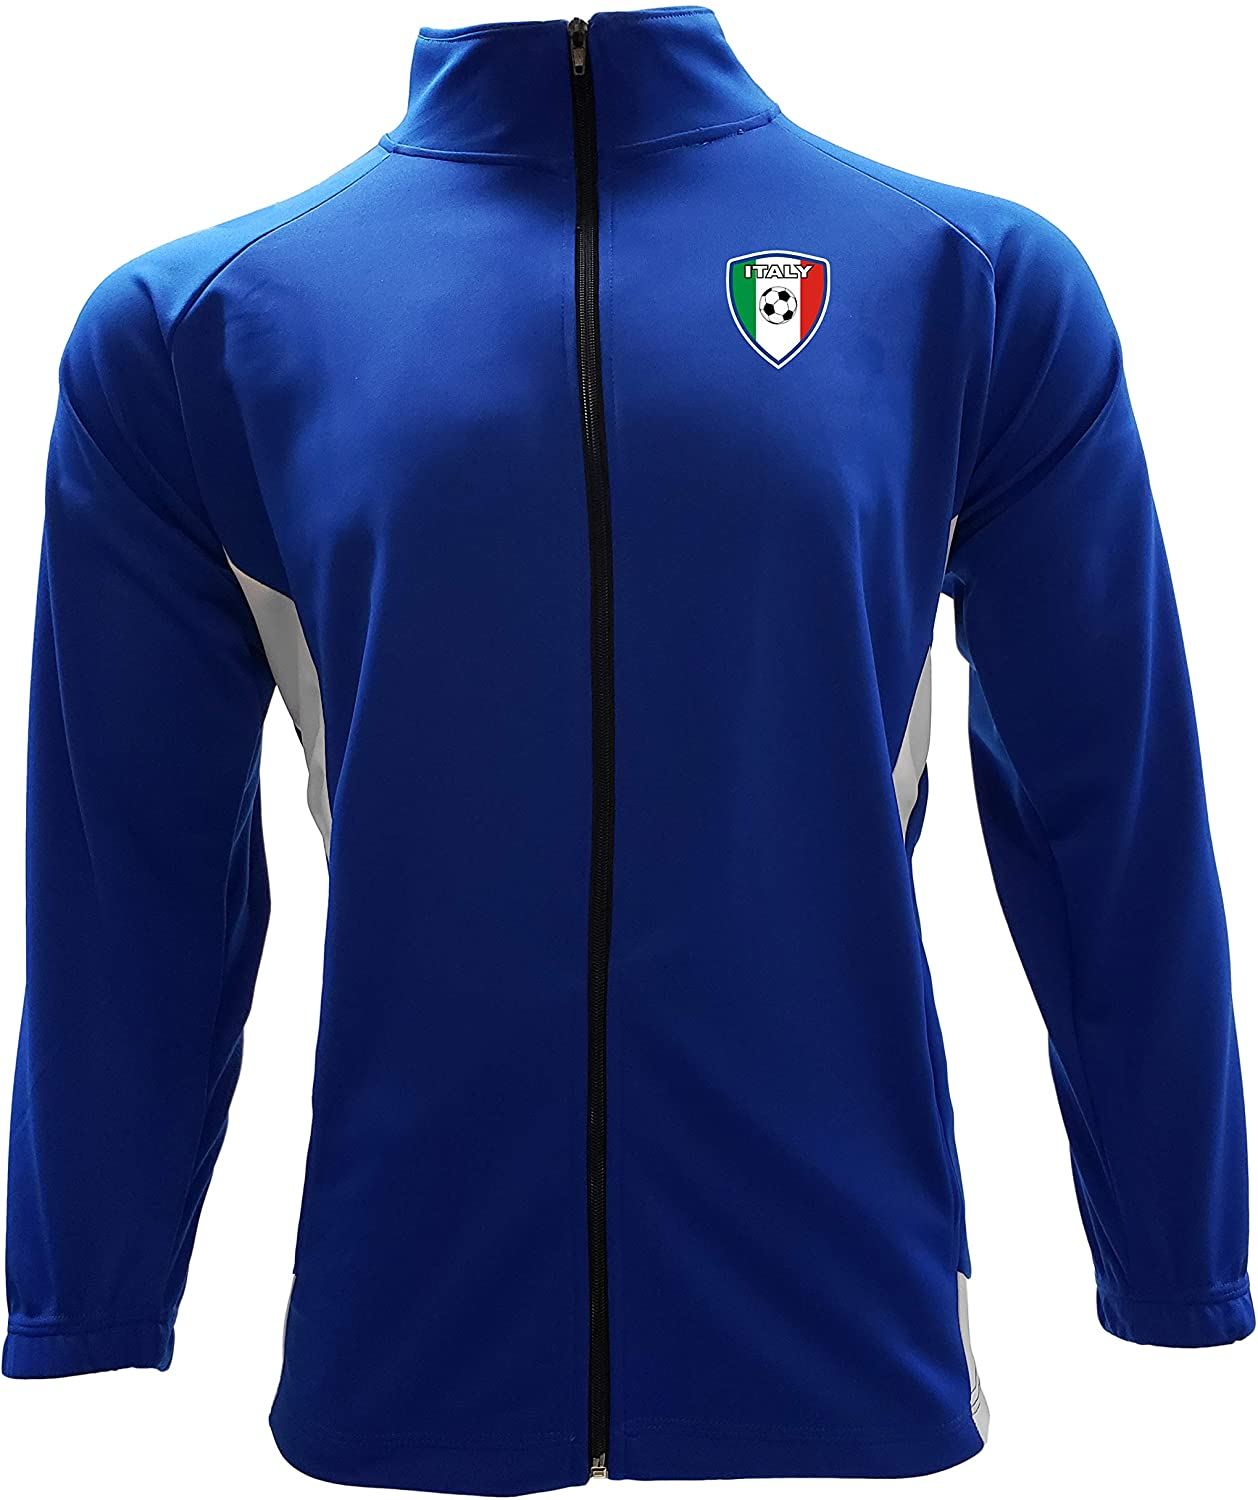 Arza Sports Men's Track Jacket Italy Color Blue/White